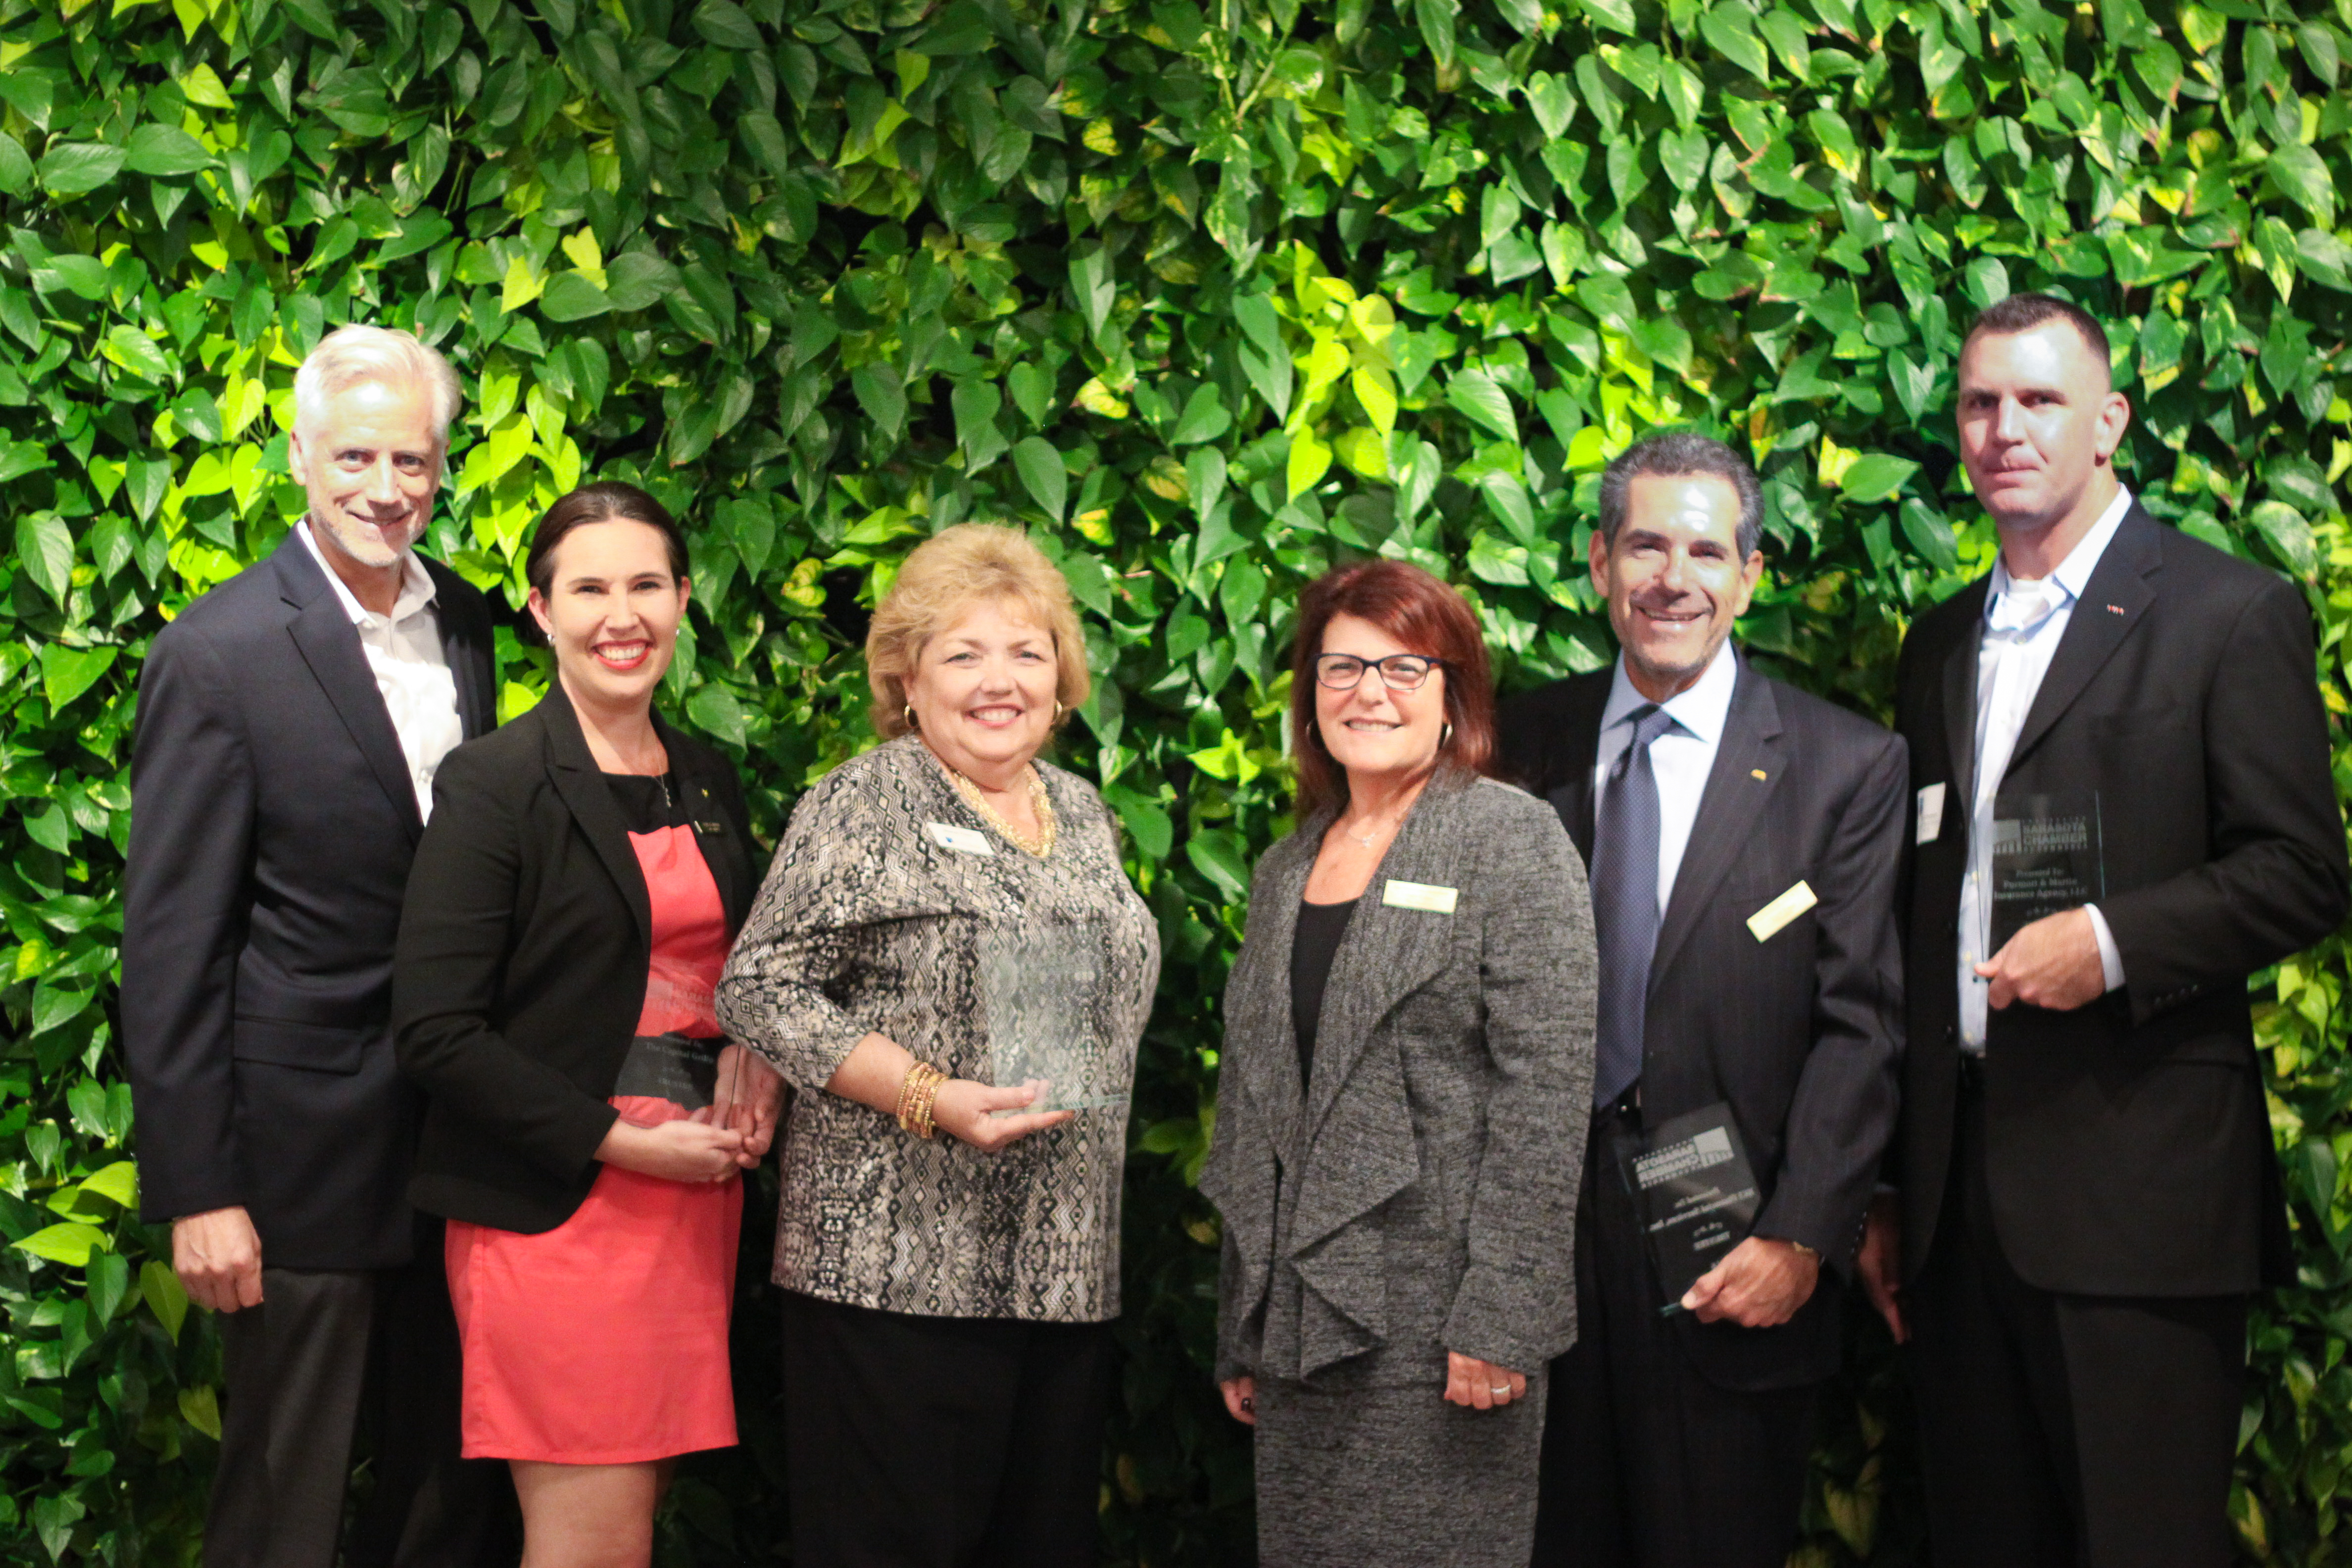 2014 srq inside the brand new trustees of the greater sarasota chamber of commerce from l to r chris